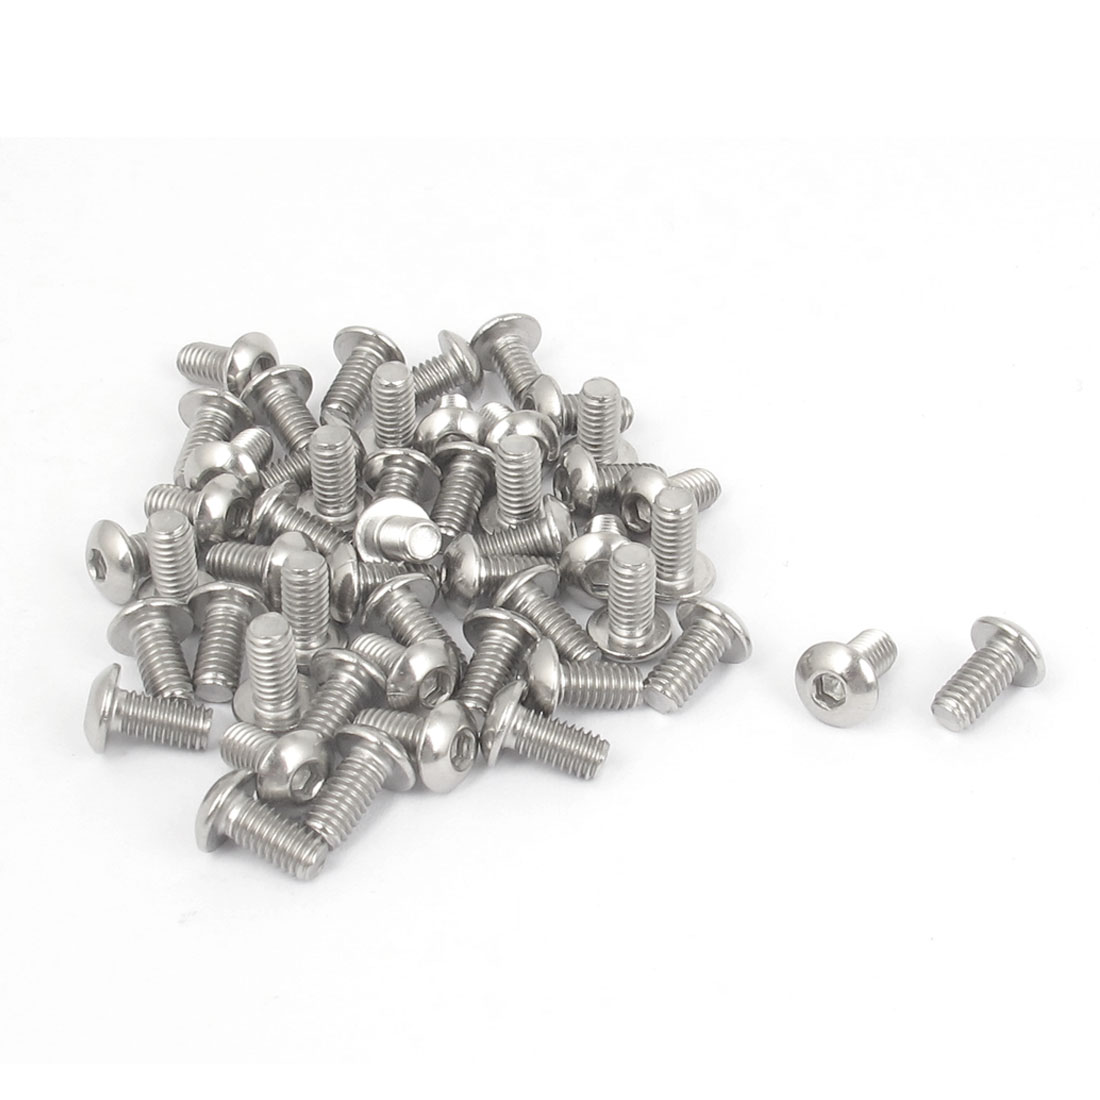 M4x8mm 304 Stainless Steel Hex Socket Machine Countersunk Round Head Screw Bolts 50PCS